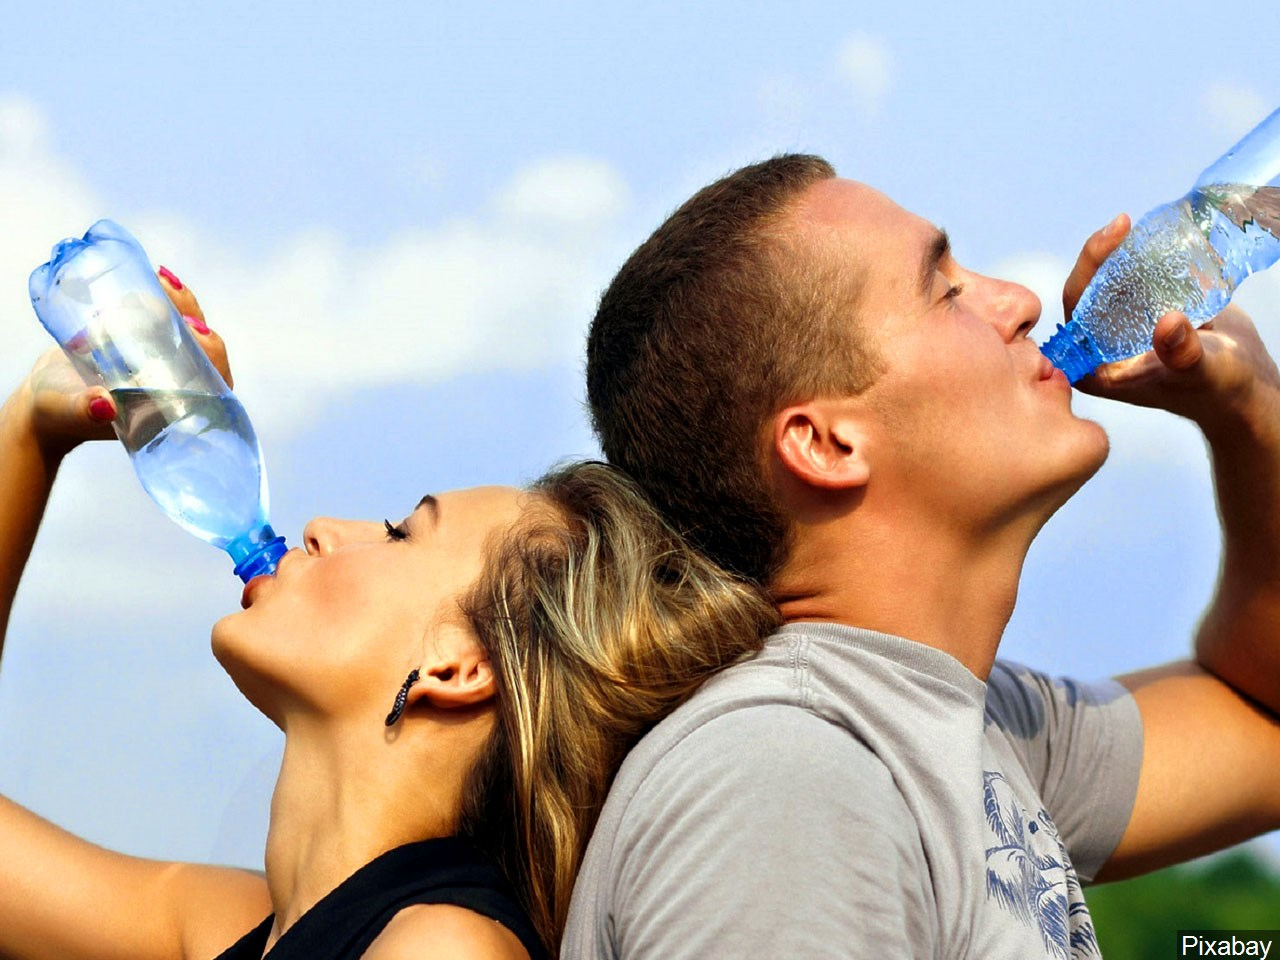 Two people drinking water